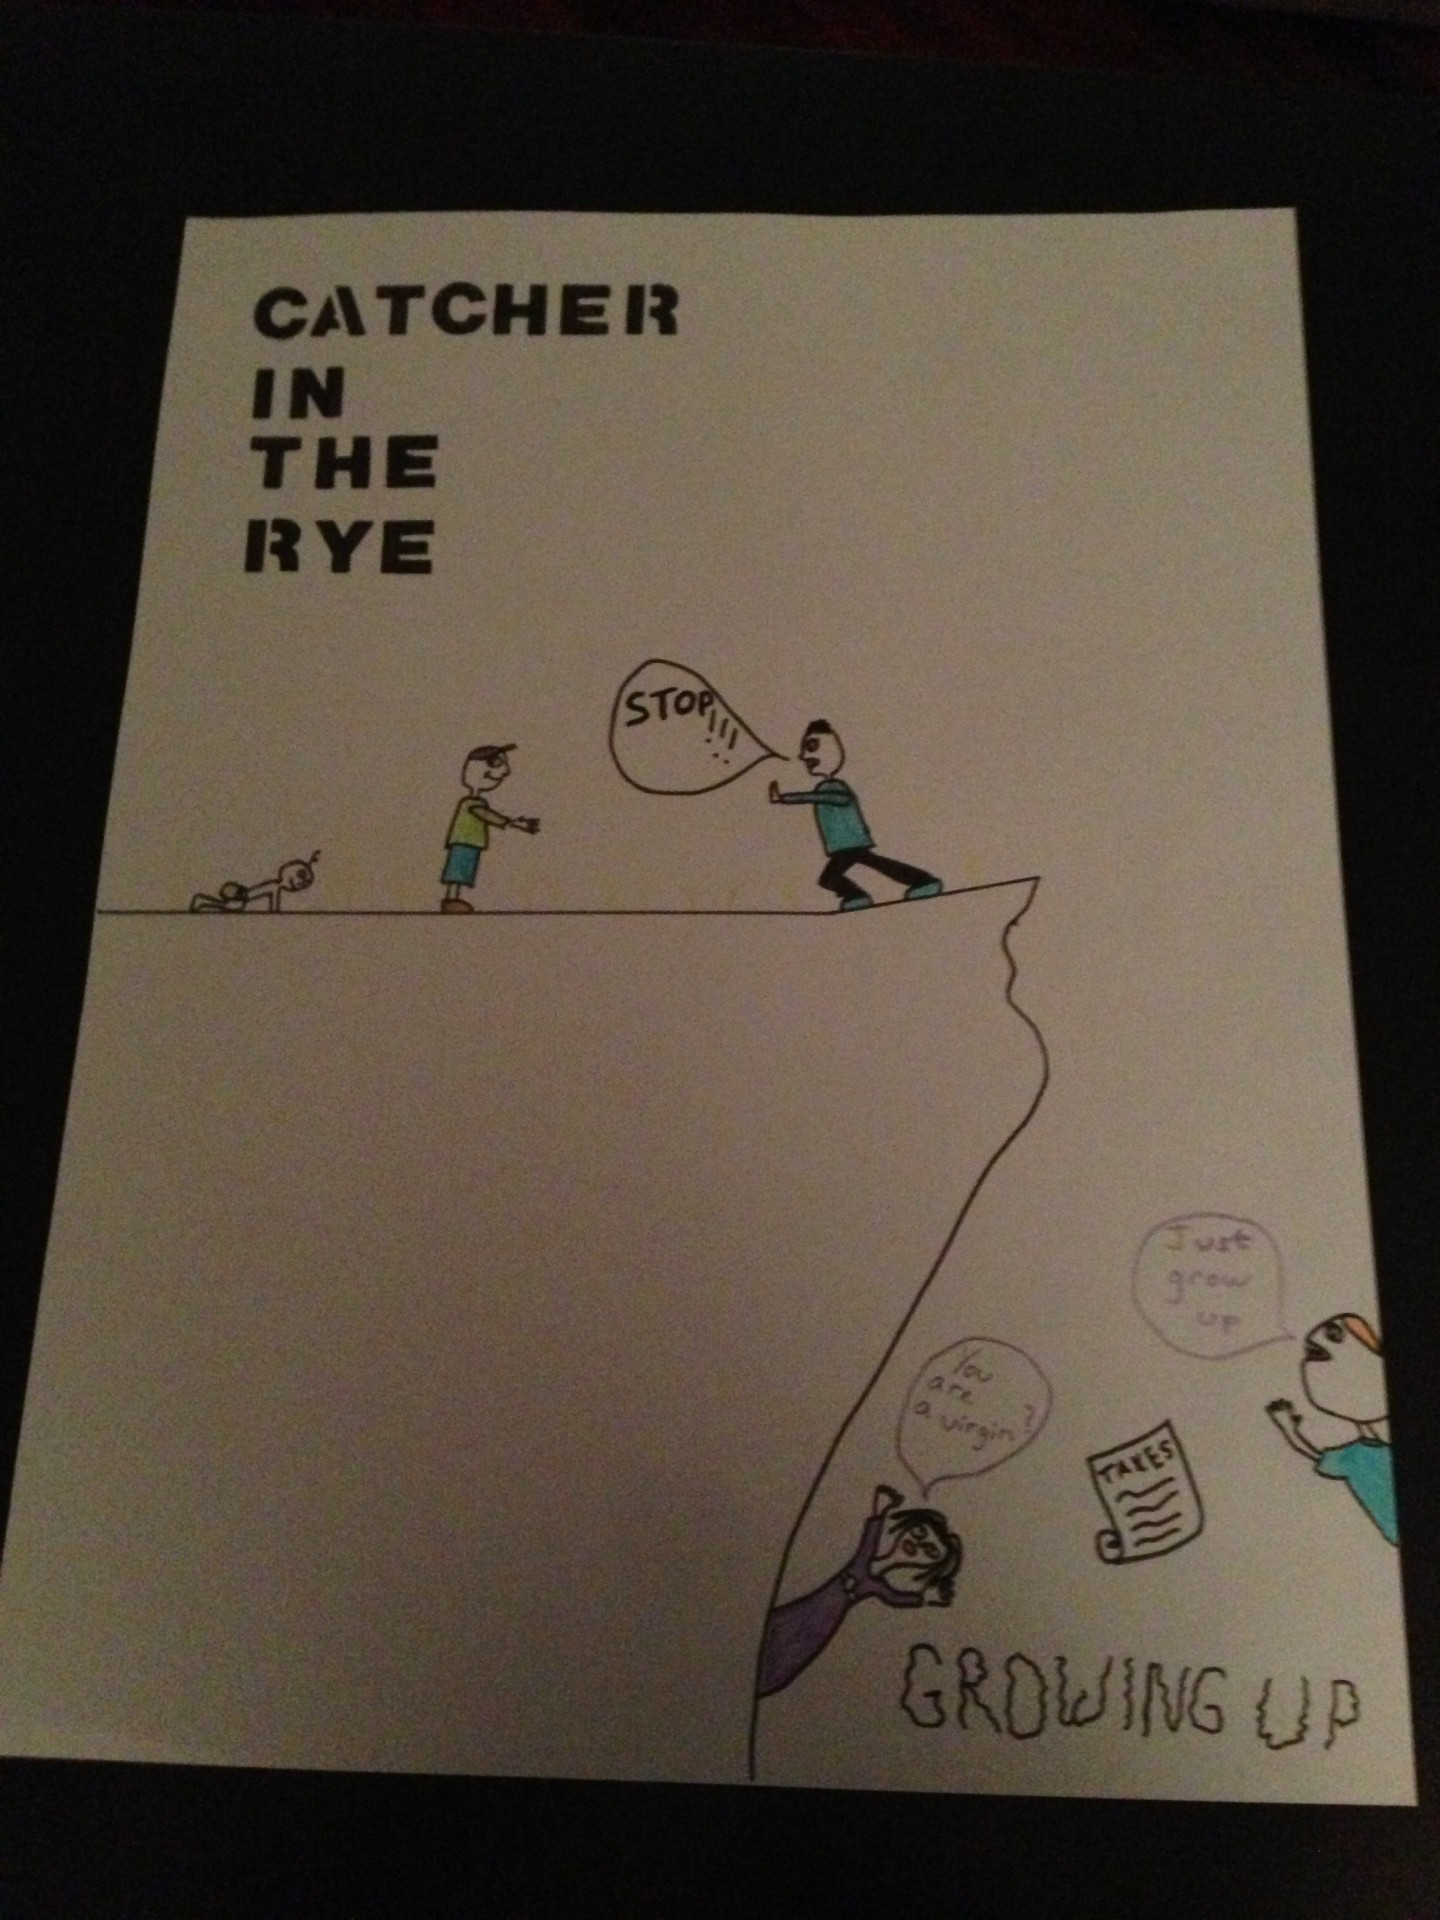 Catcher in the rye essay growing up